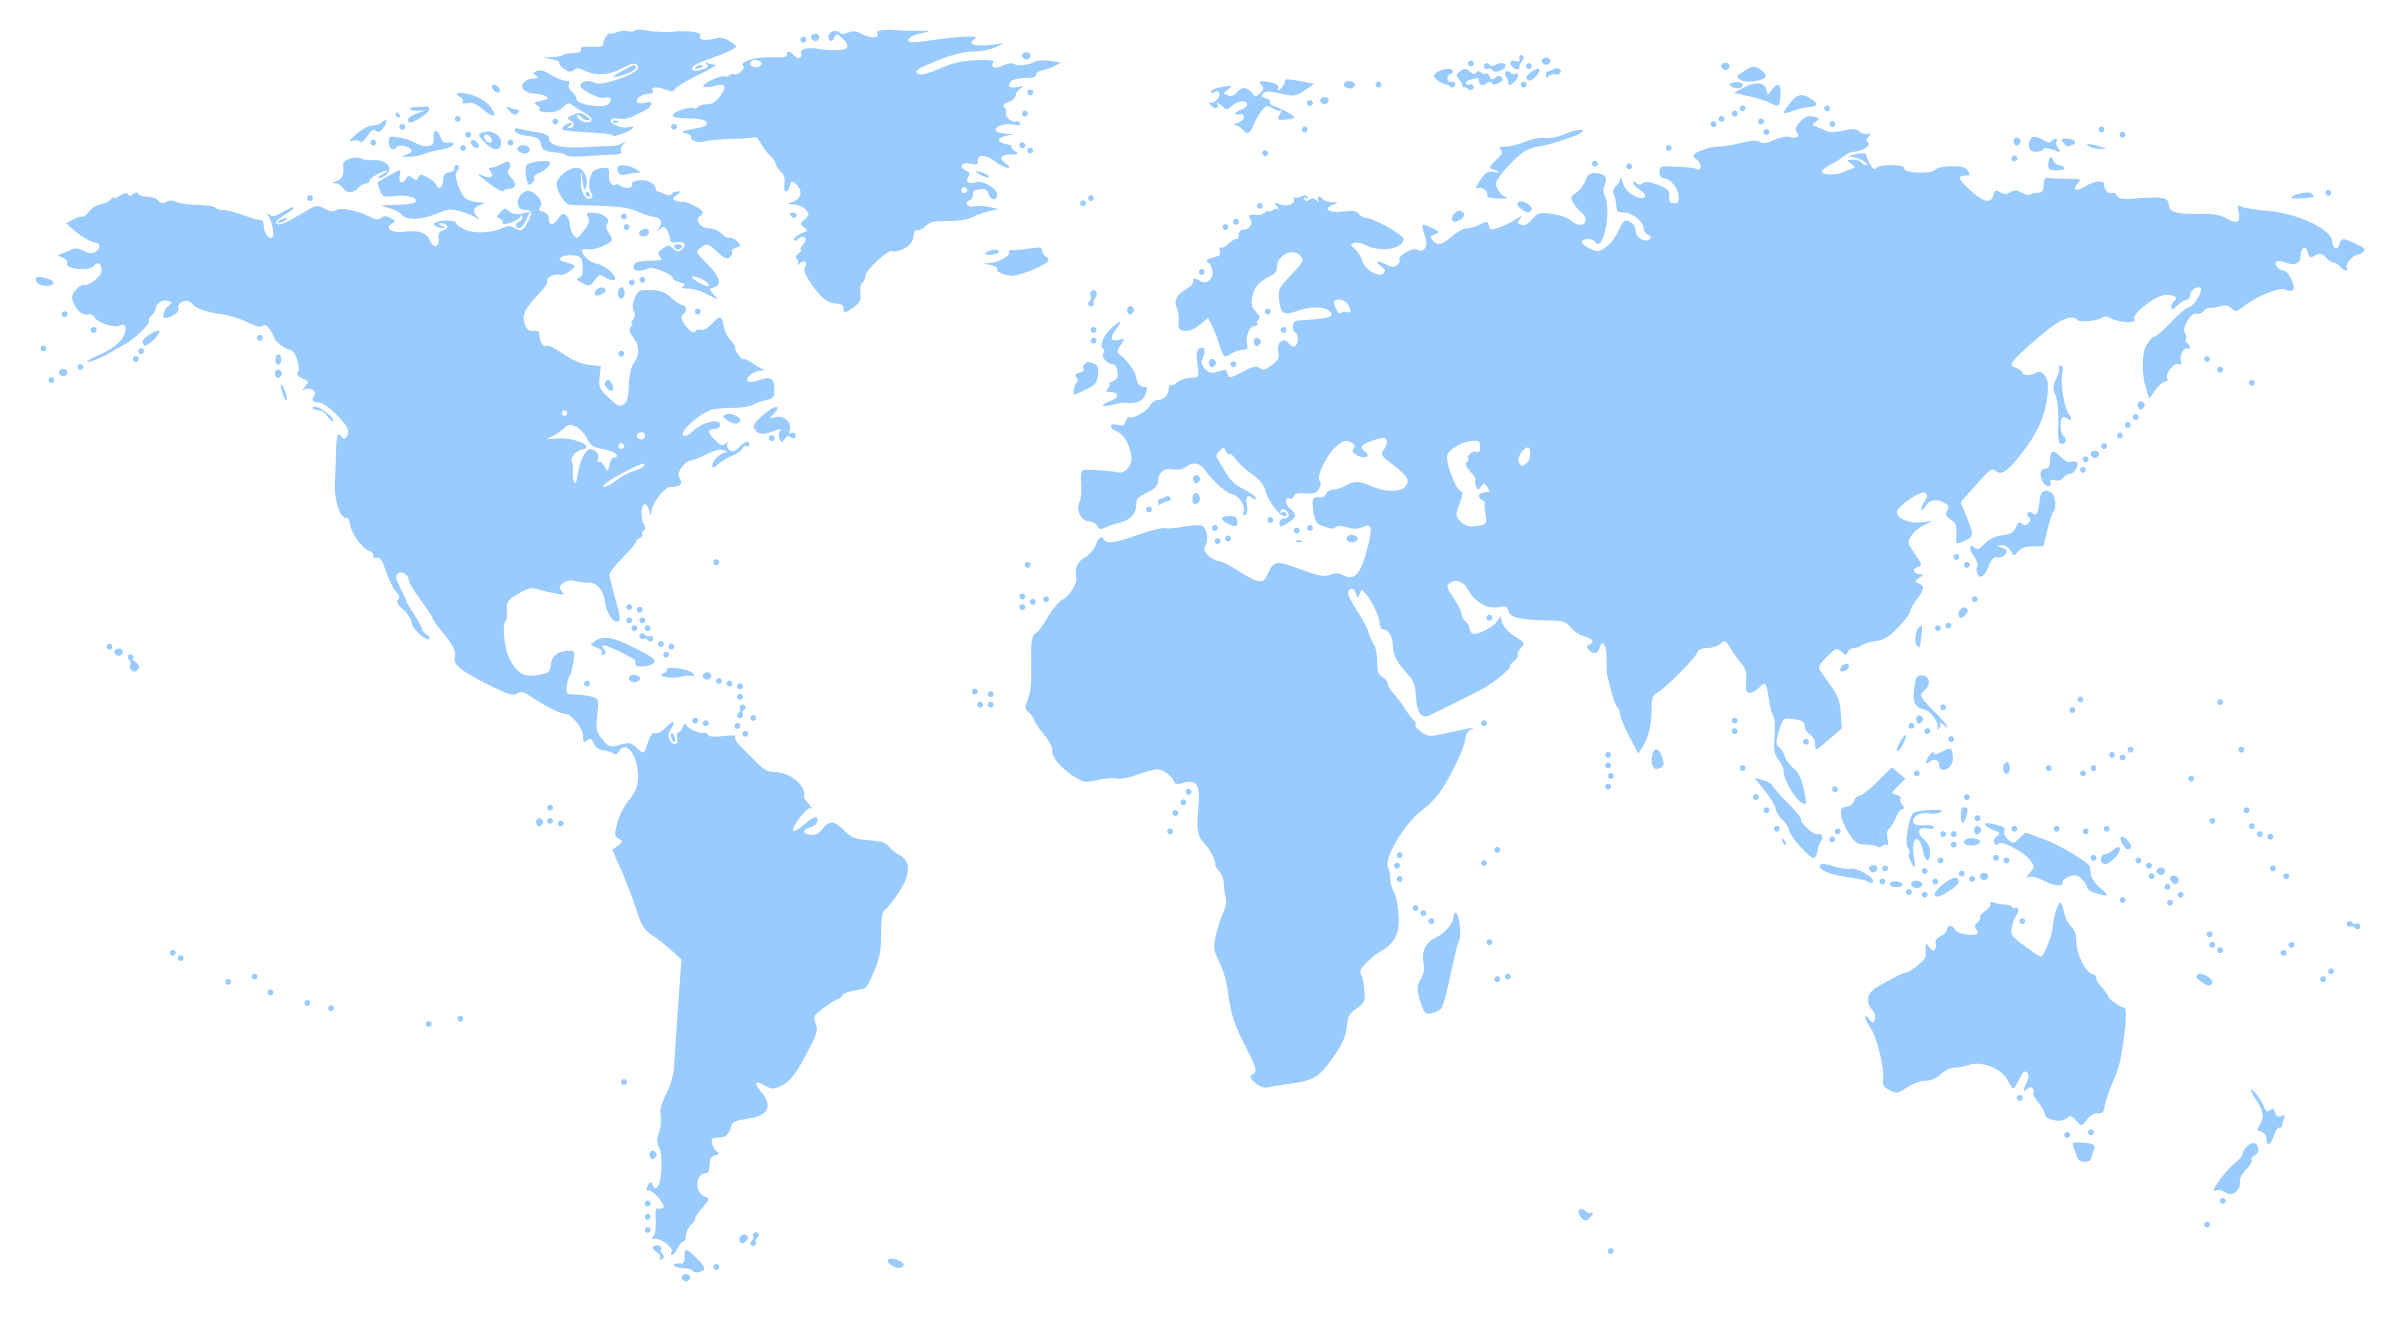 PNG World Map - 41974